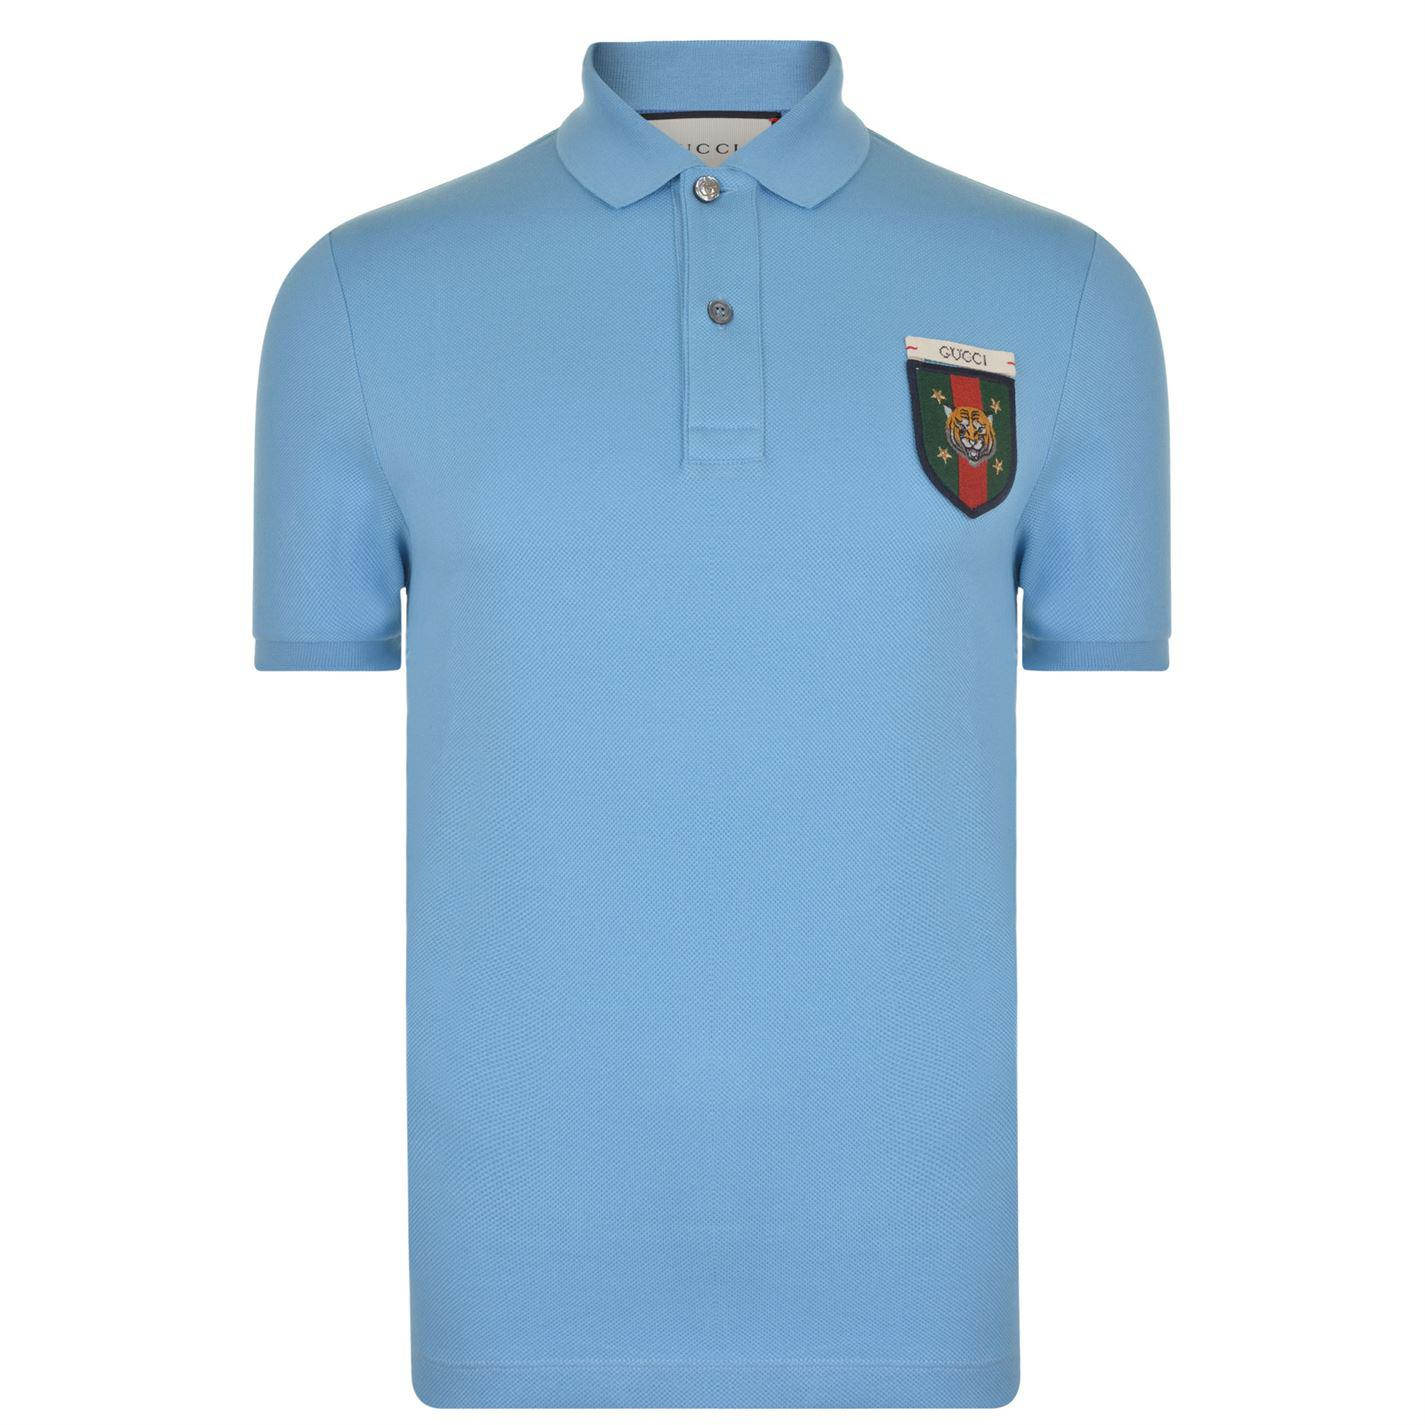 8cf46d292e65 Gucci Tiger Patch Polo Shirt in Blue for Men - Lyst